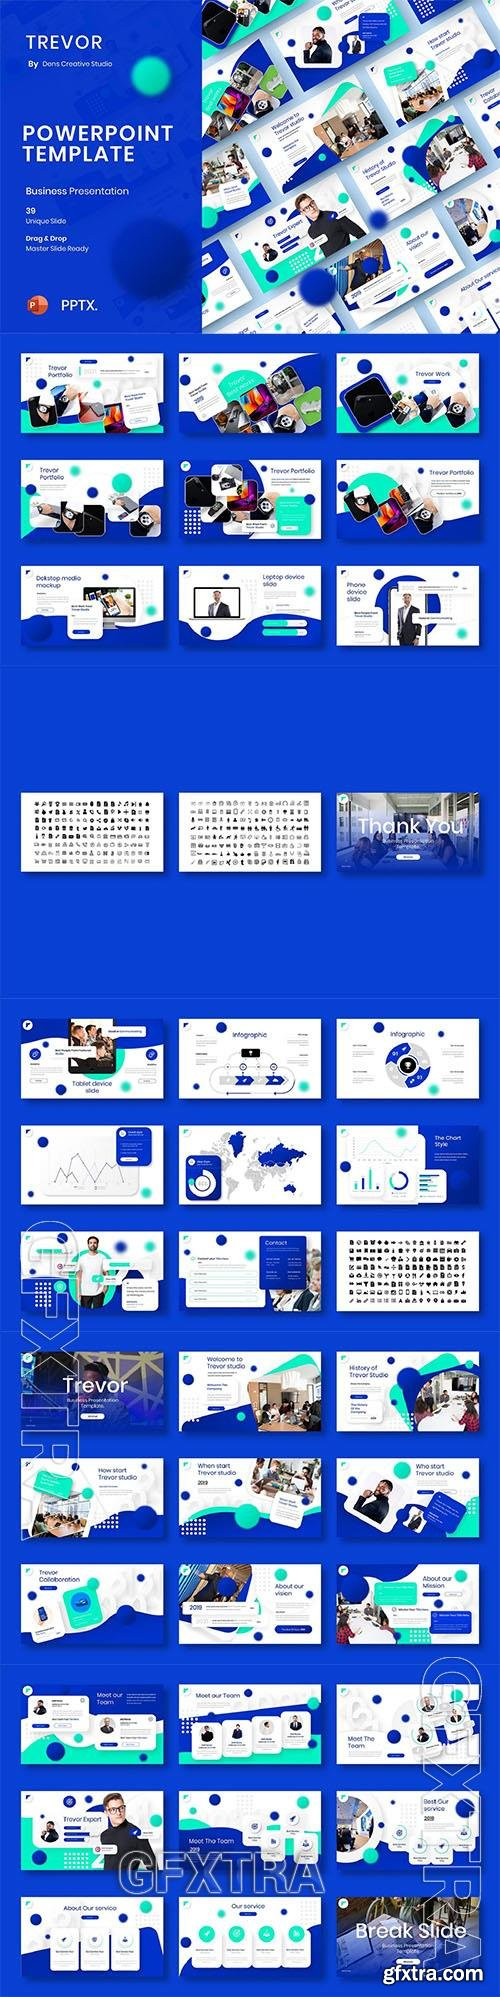 Trevor – Business Powerpoint, Keynote and Google Slides Template